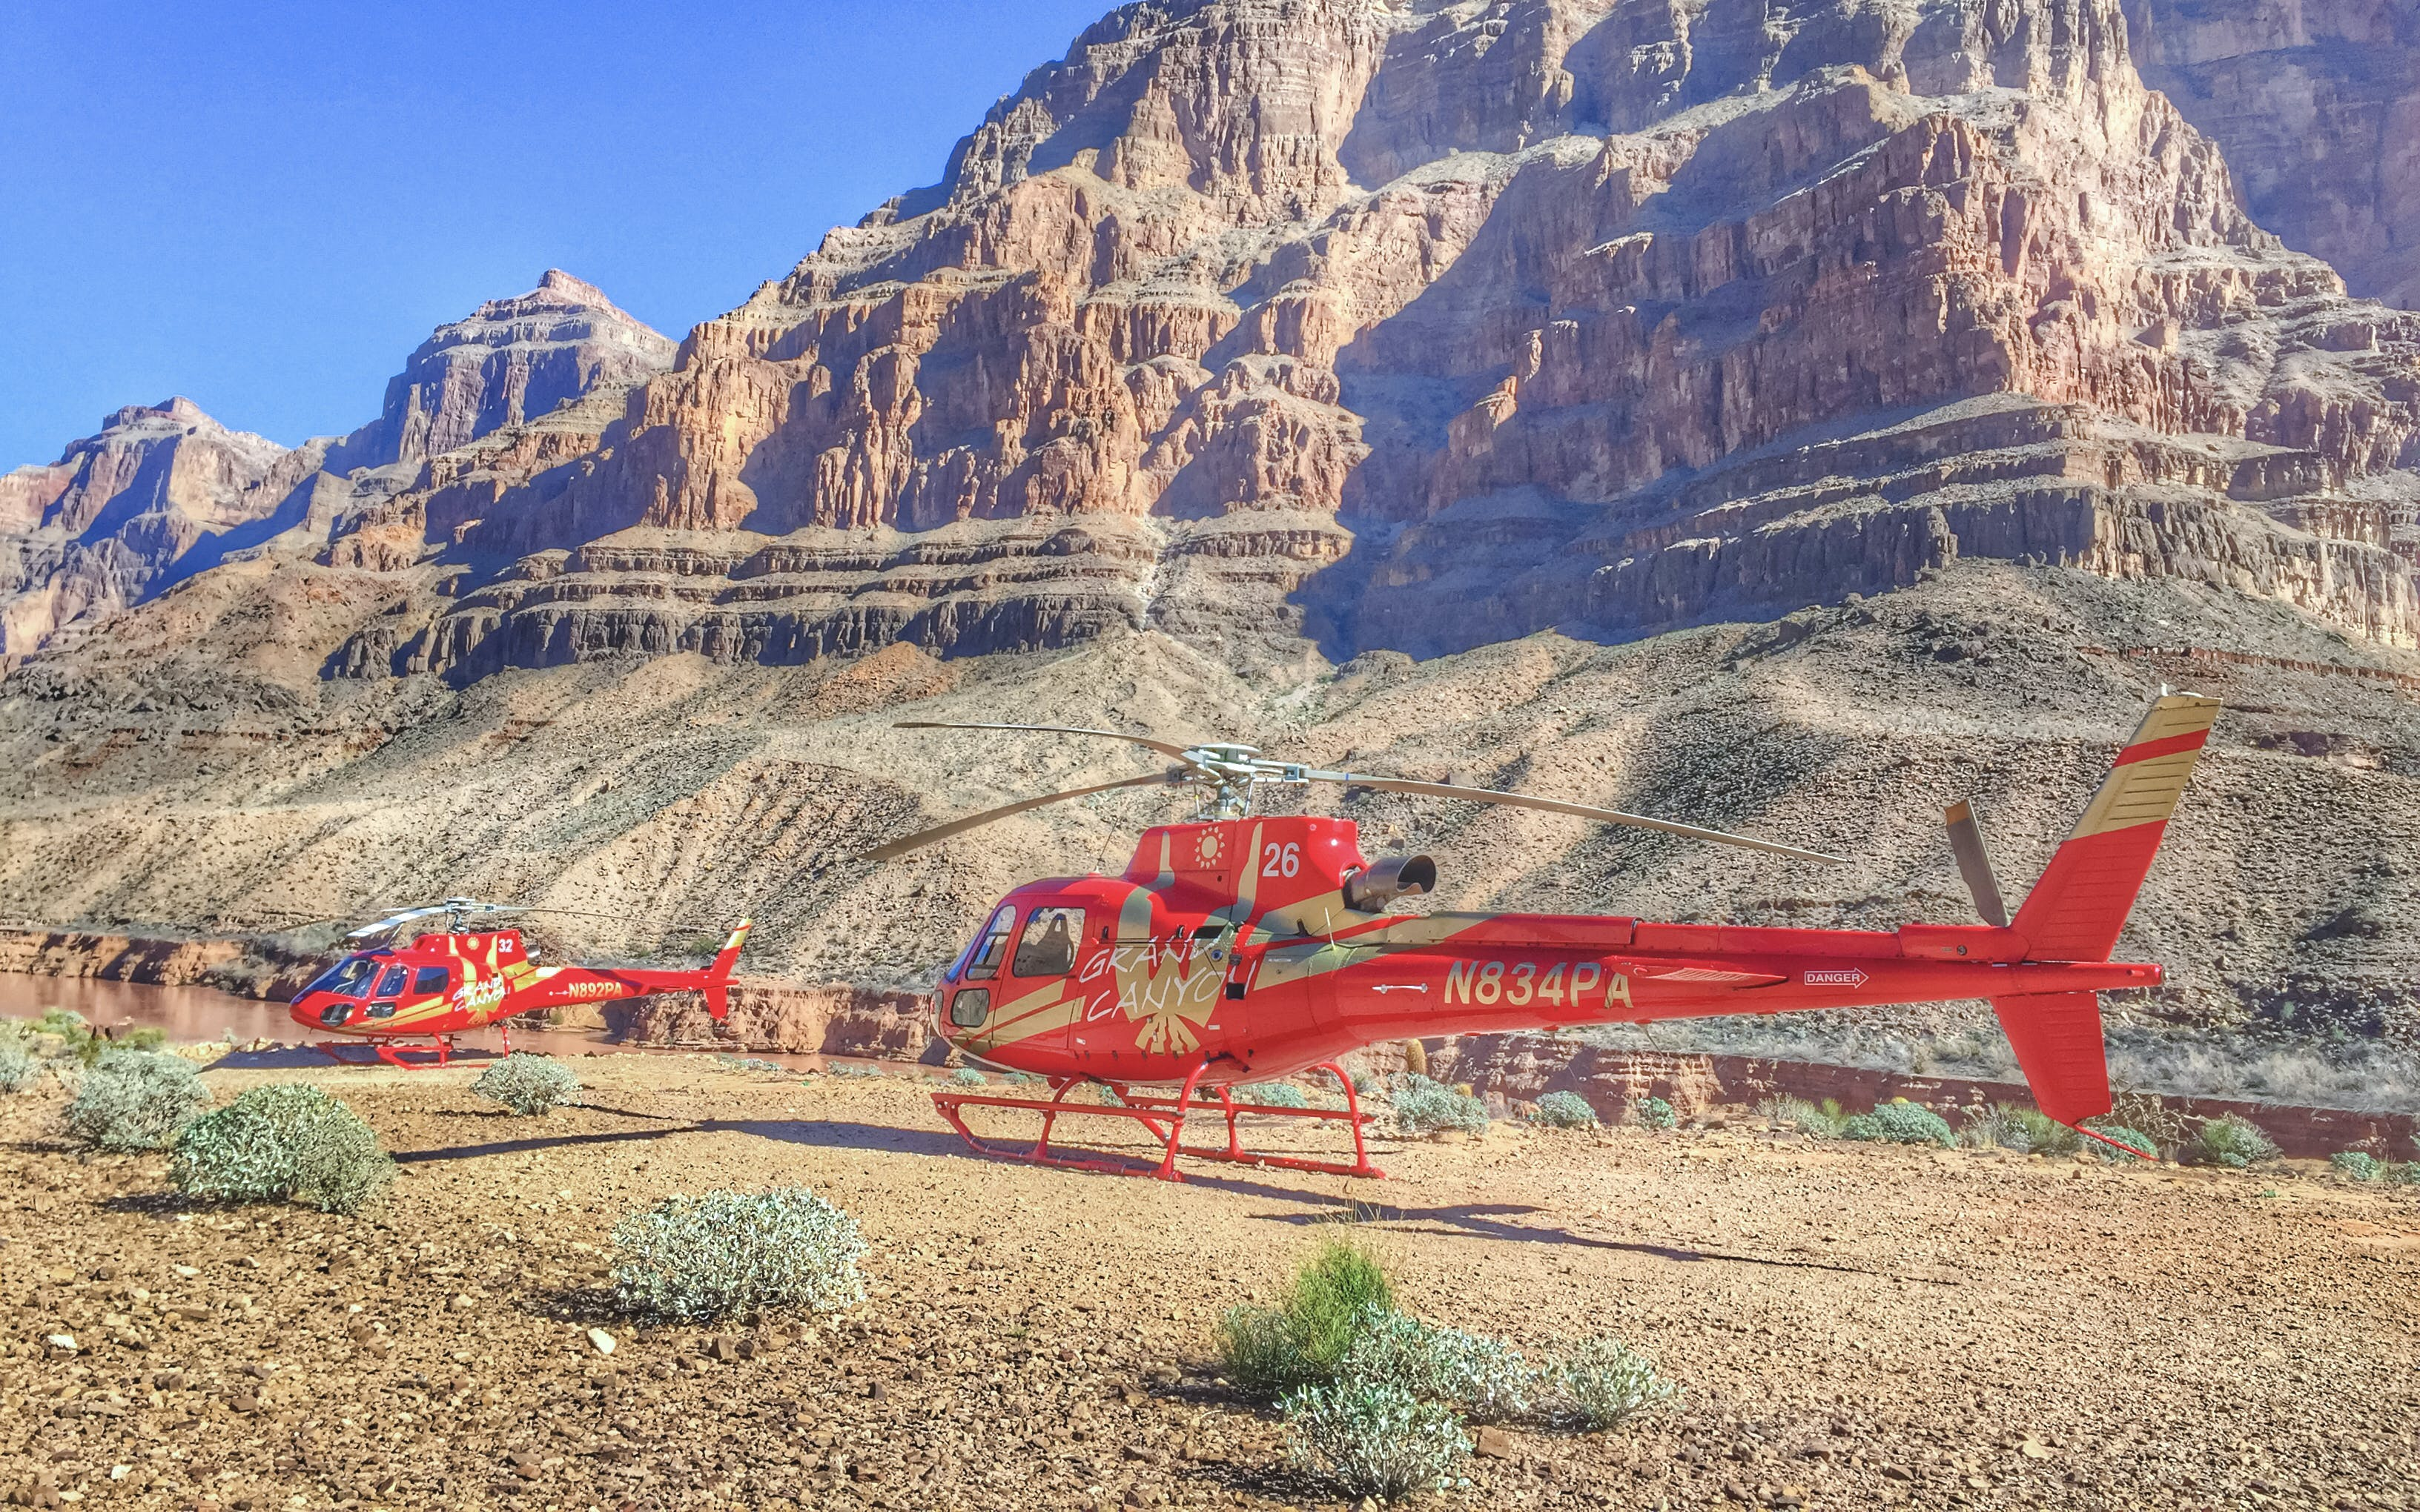 west rim helicopter tour with river cruise and optional skywalk (self-drive)-1